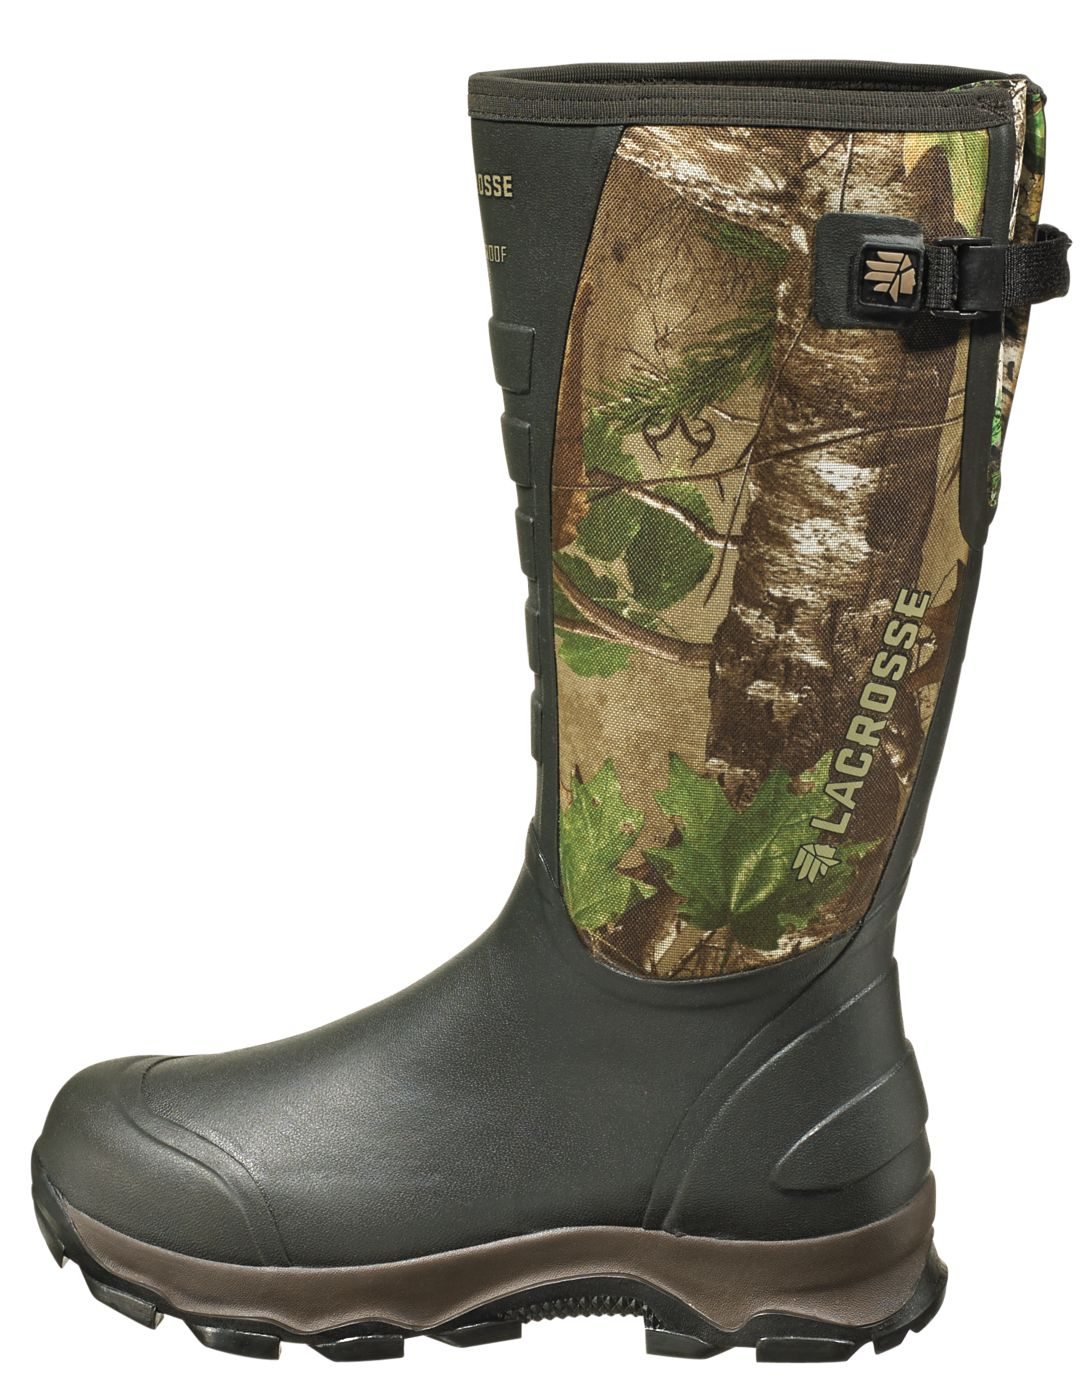 "b9f6abab6a483 LaCrosse Men's 4x Alpha Snake Boot 16"" 3.5 mm Hunting 